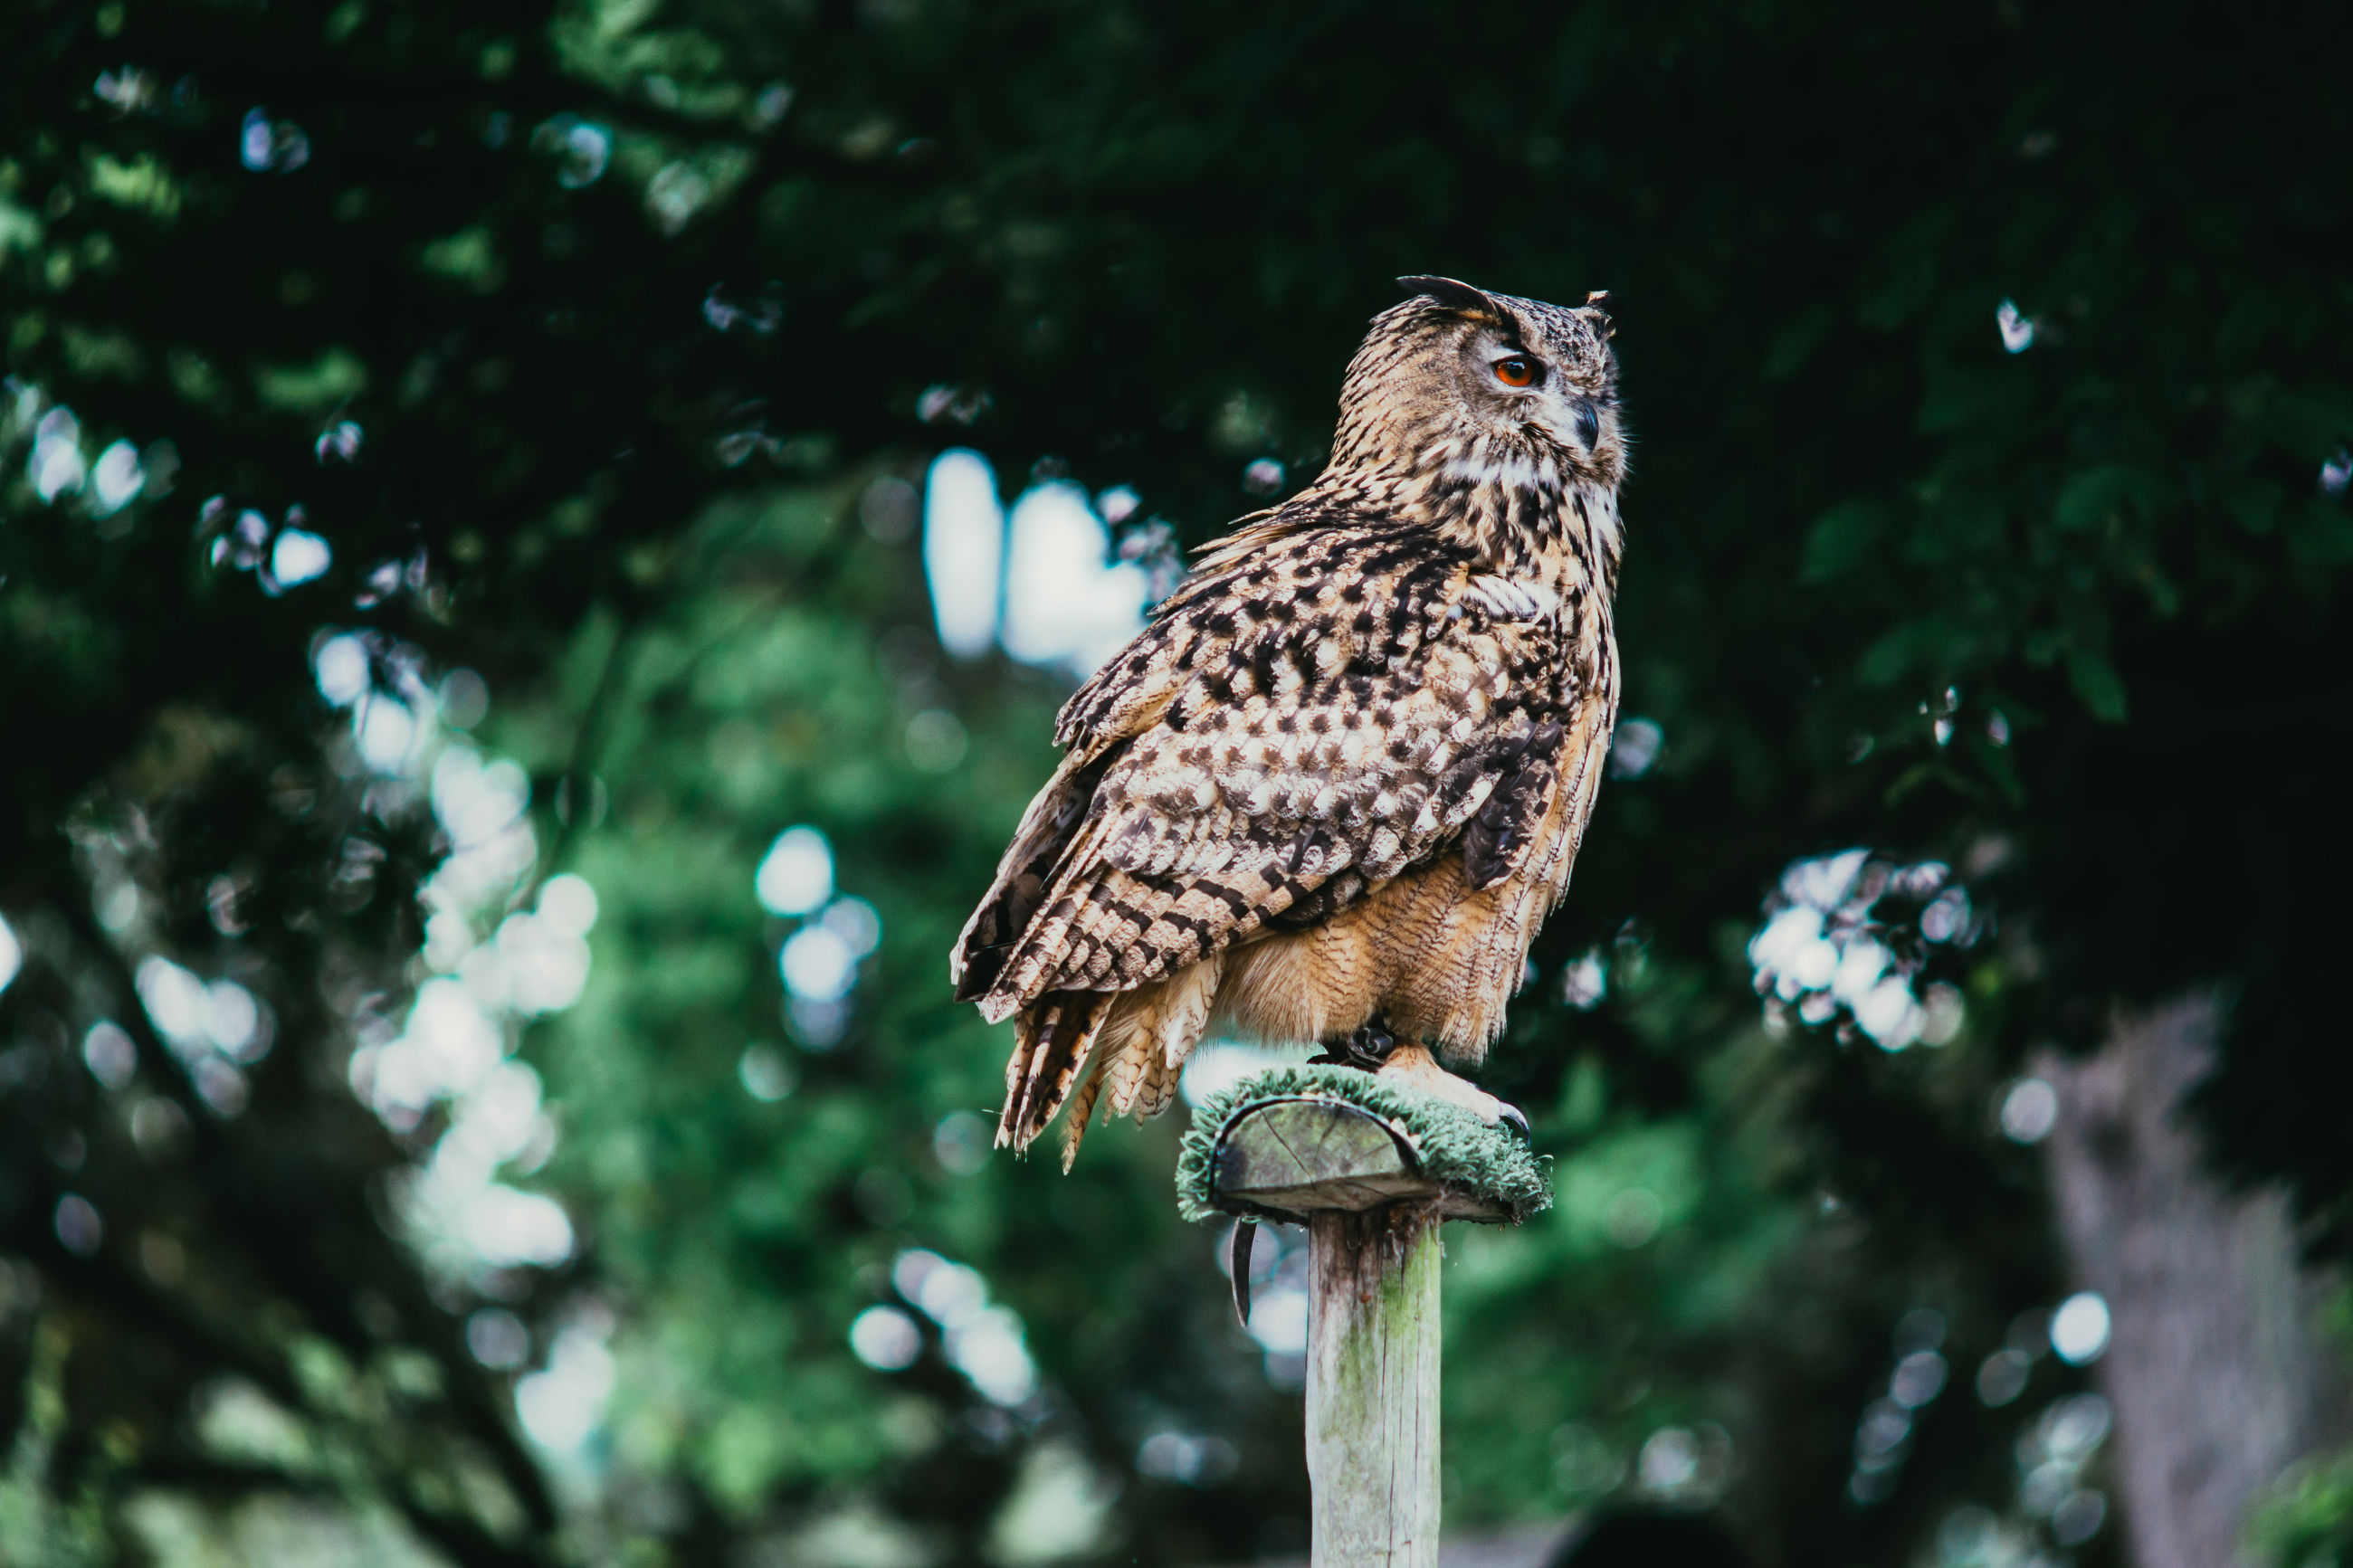 Low angle view of eurasian eagle owl perching on wooden post